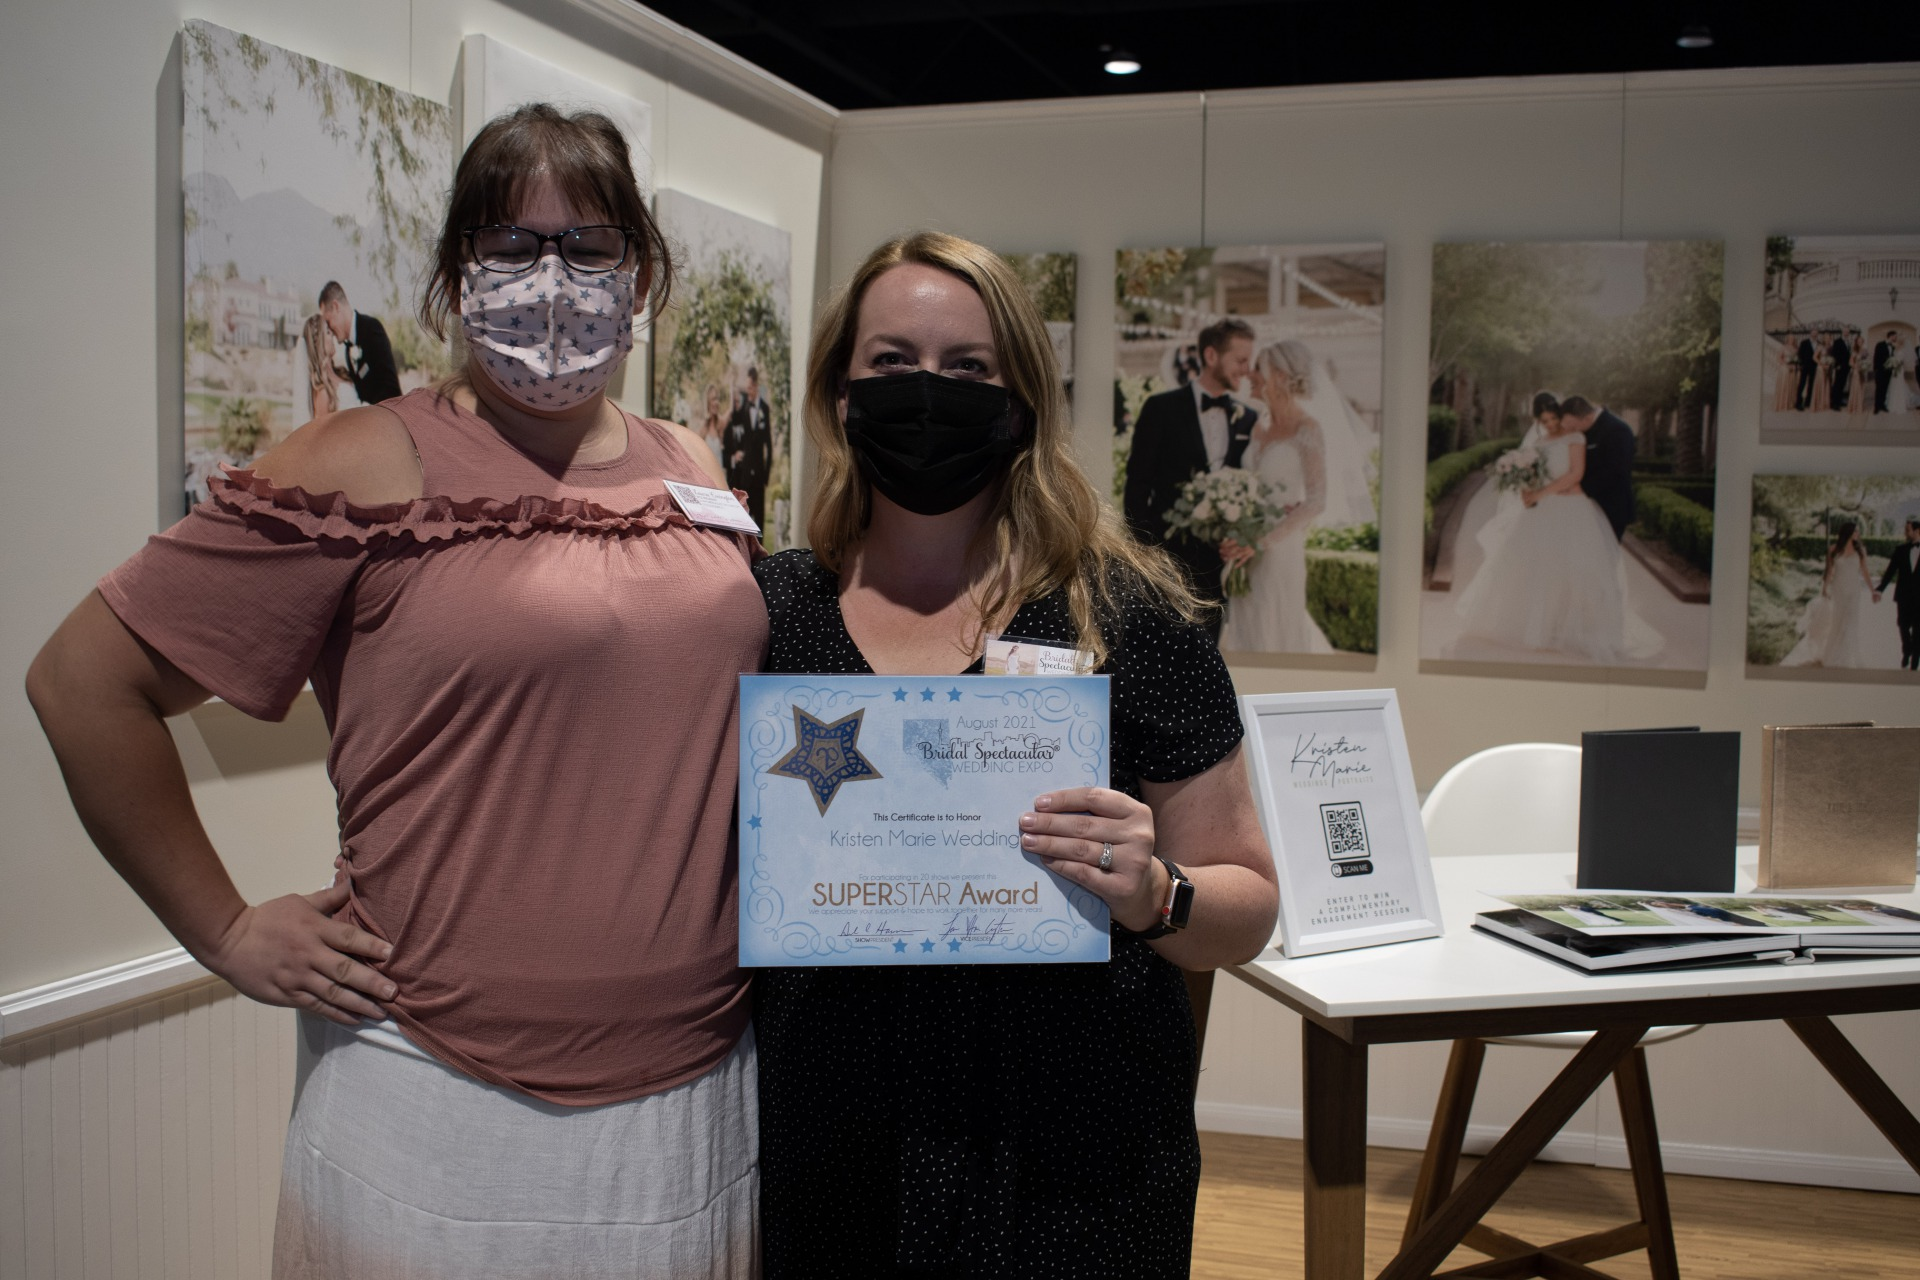 Kristen Marie Weddings and portraits, Las Vegas Wedding Professionals and photographer wins star award at Bridal Spectacular Expo